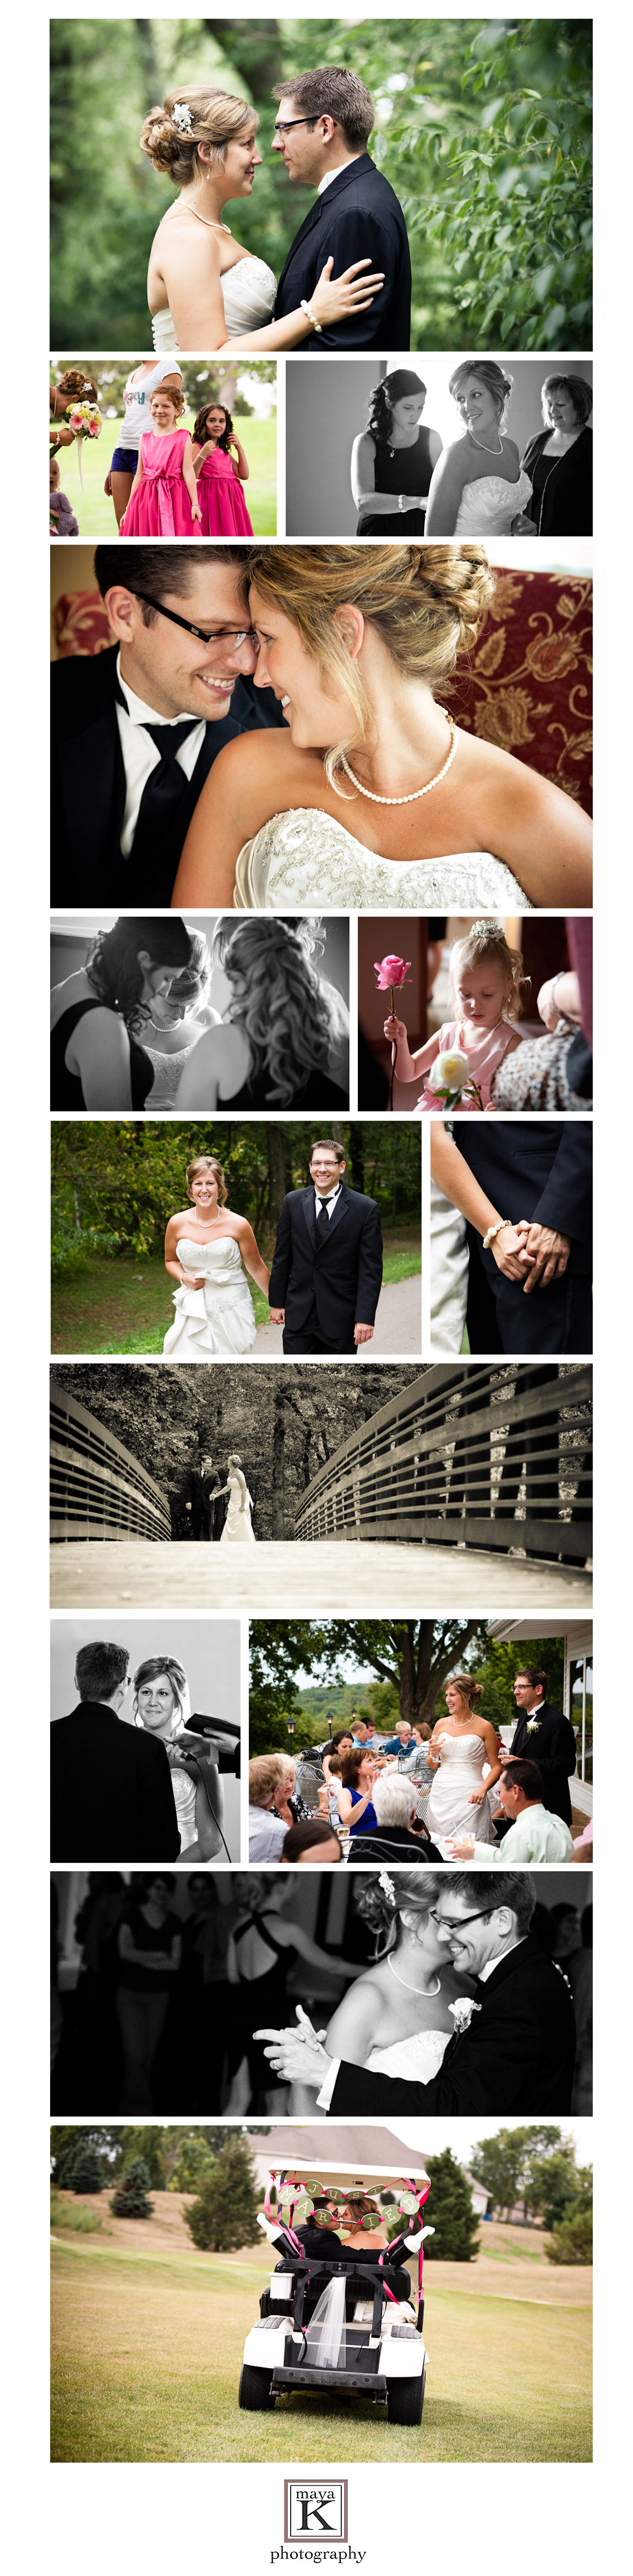 J+n_wedding-portrait-collage